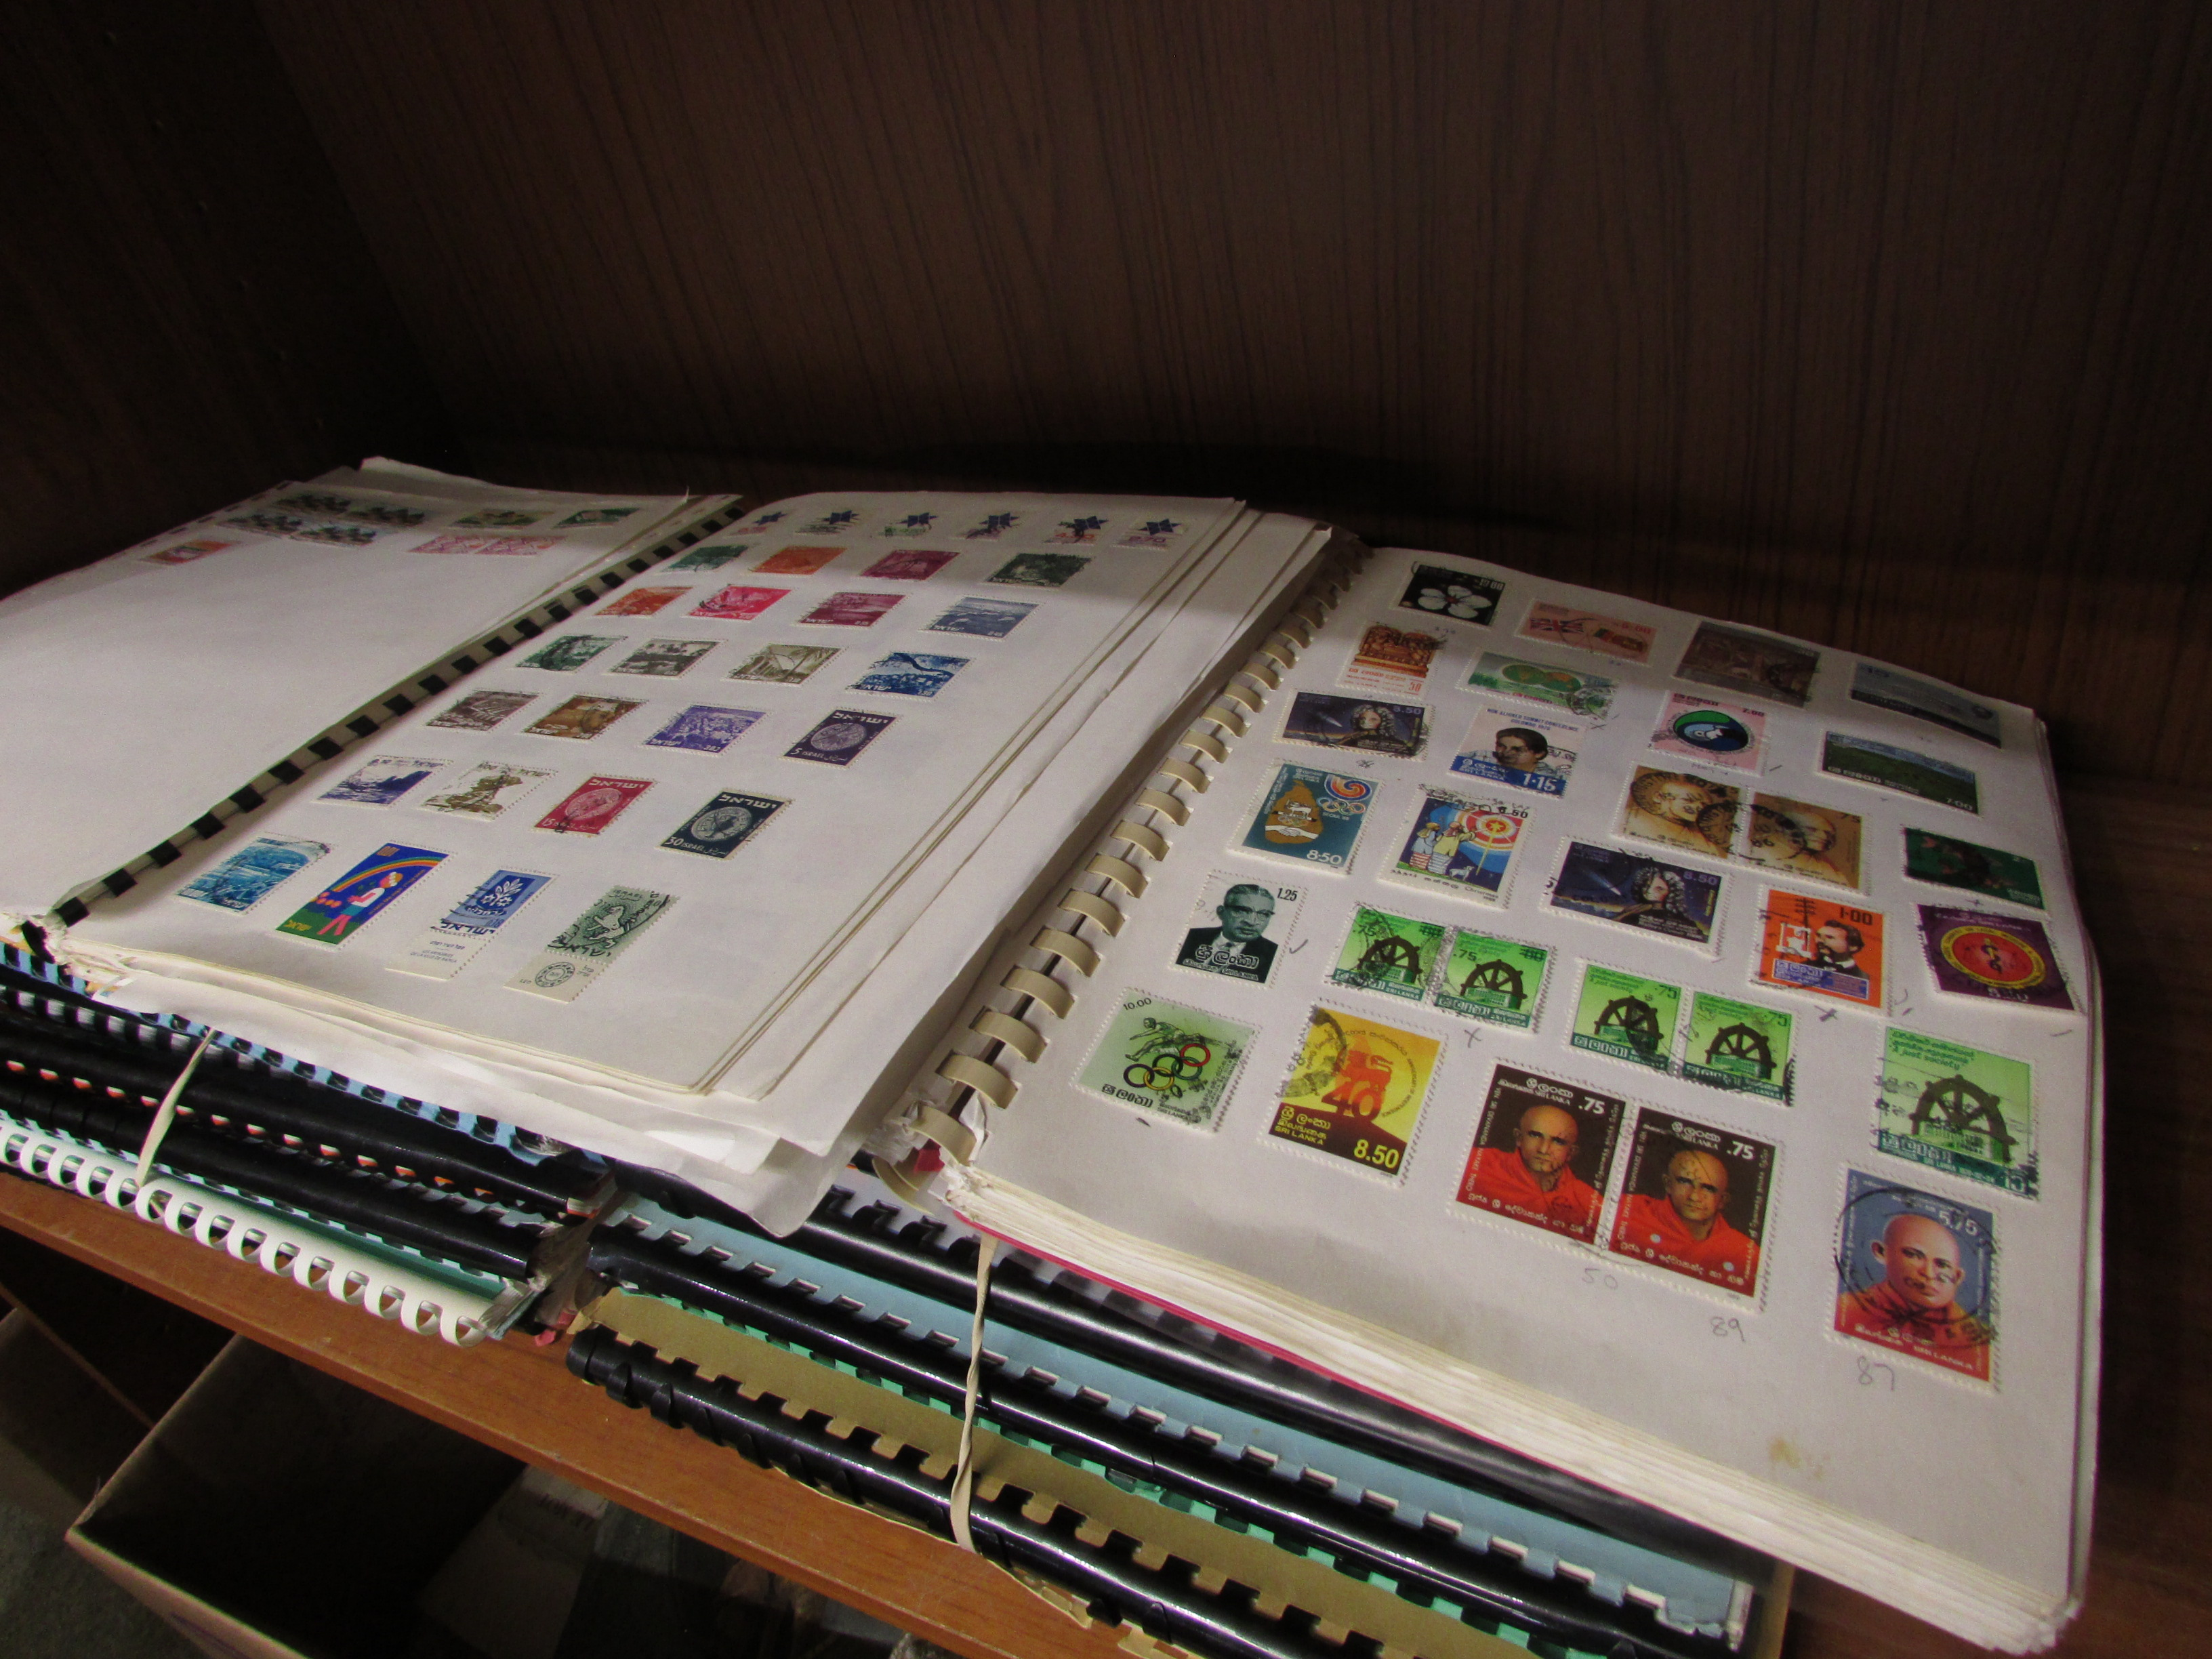 Lot 204 - Twenty-two spiral-bound albums of modern worldwide stamps including South African, Indian,